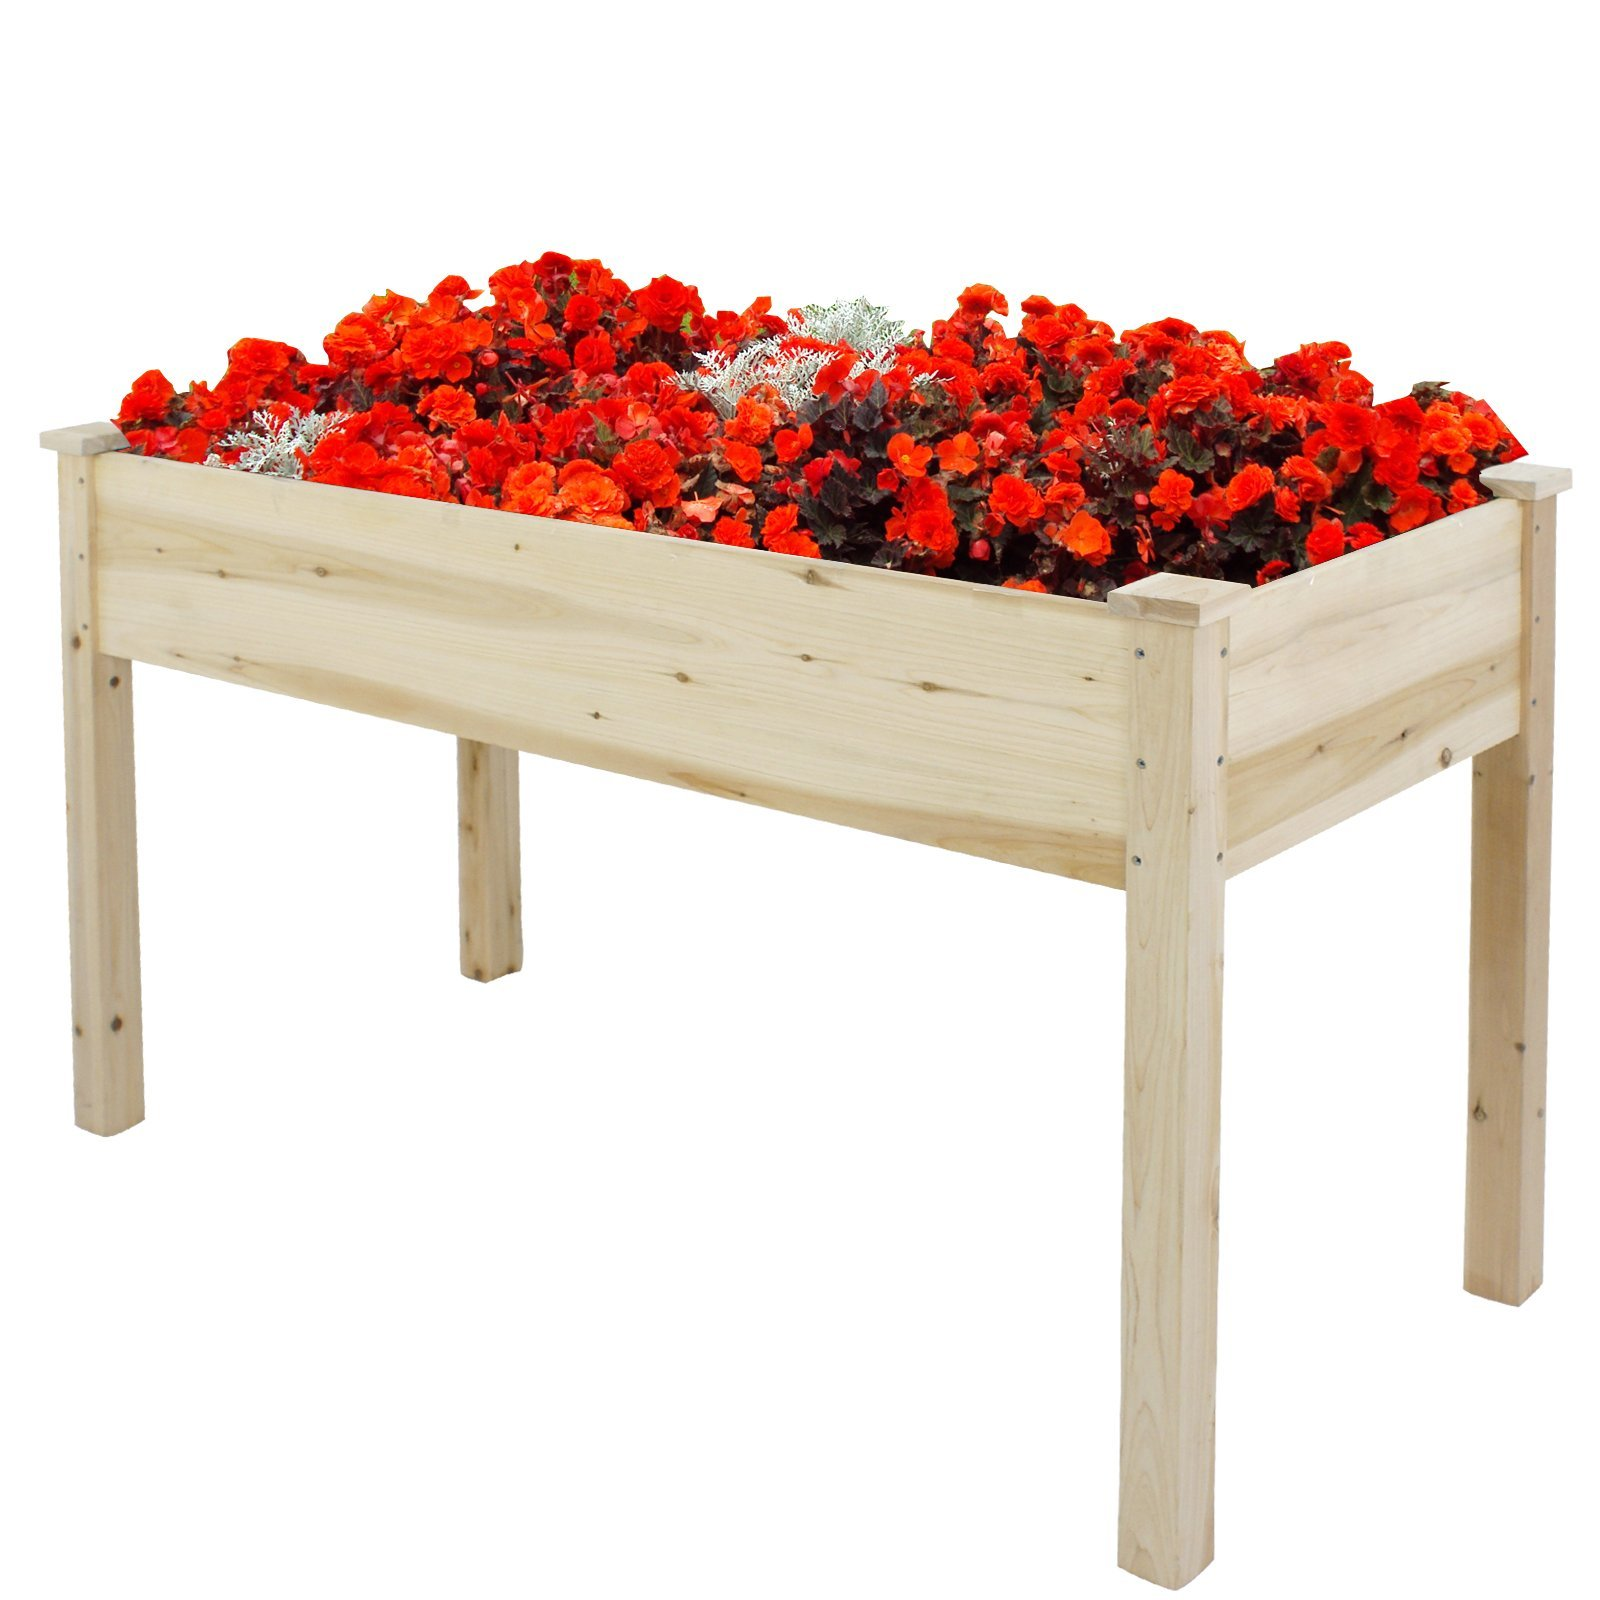 ZENY Patio Wooden Raised Garden Planter Bed 30'' High Elevated Planter Kit Boxes Grow Gardening Vegetable Flowers Plants